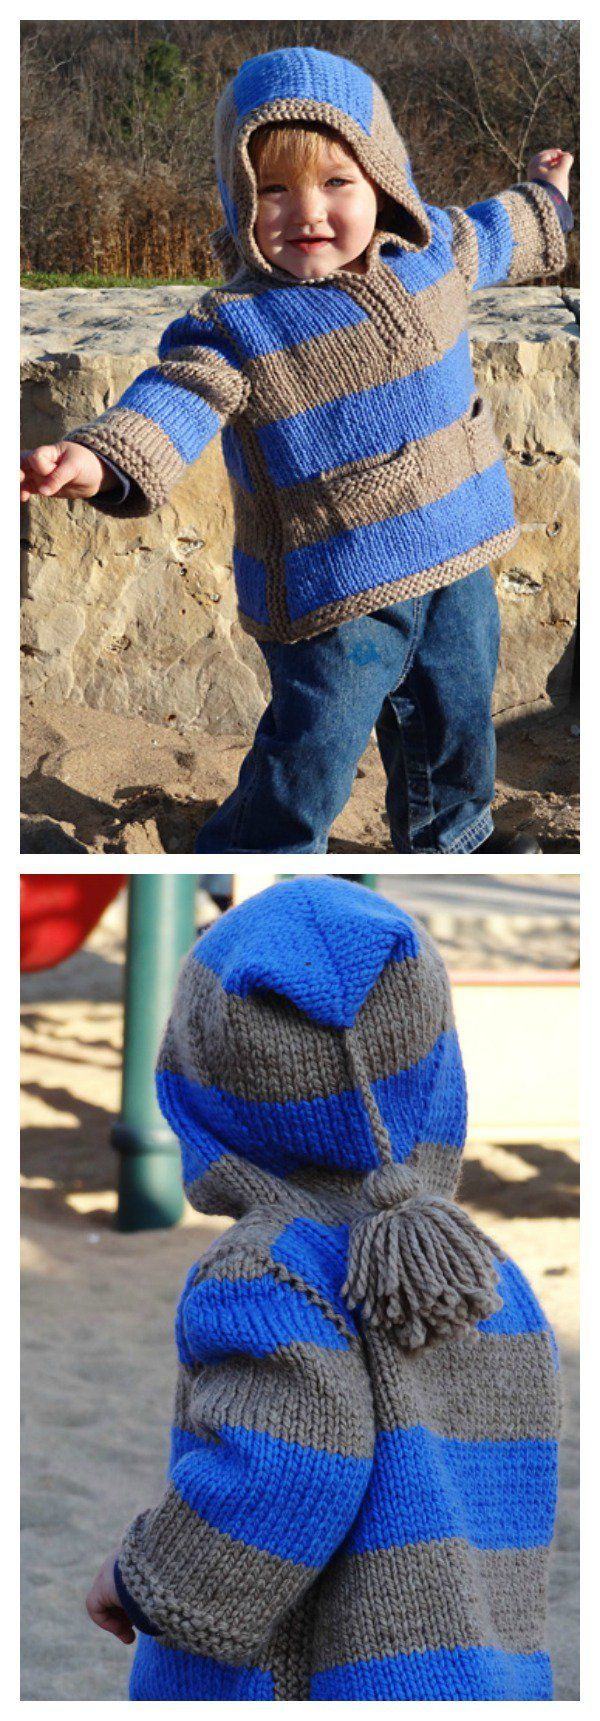 Idaho Hoodie Baby Pullover Sweater Free Knitting Pattern